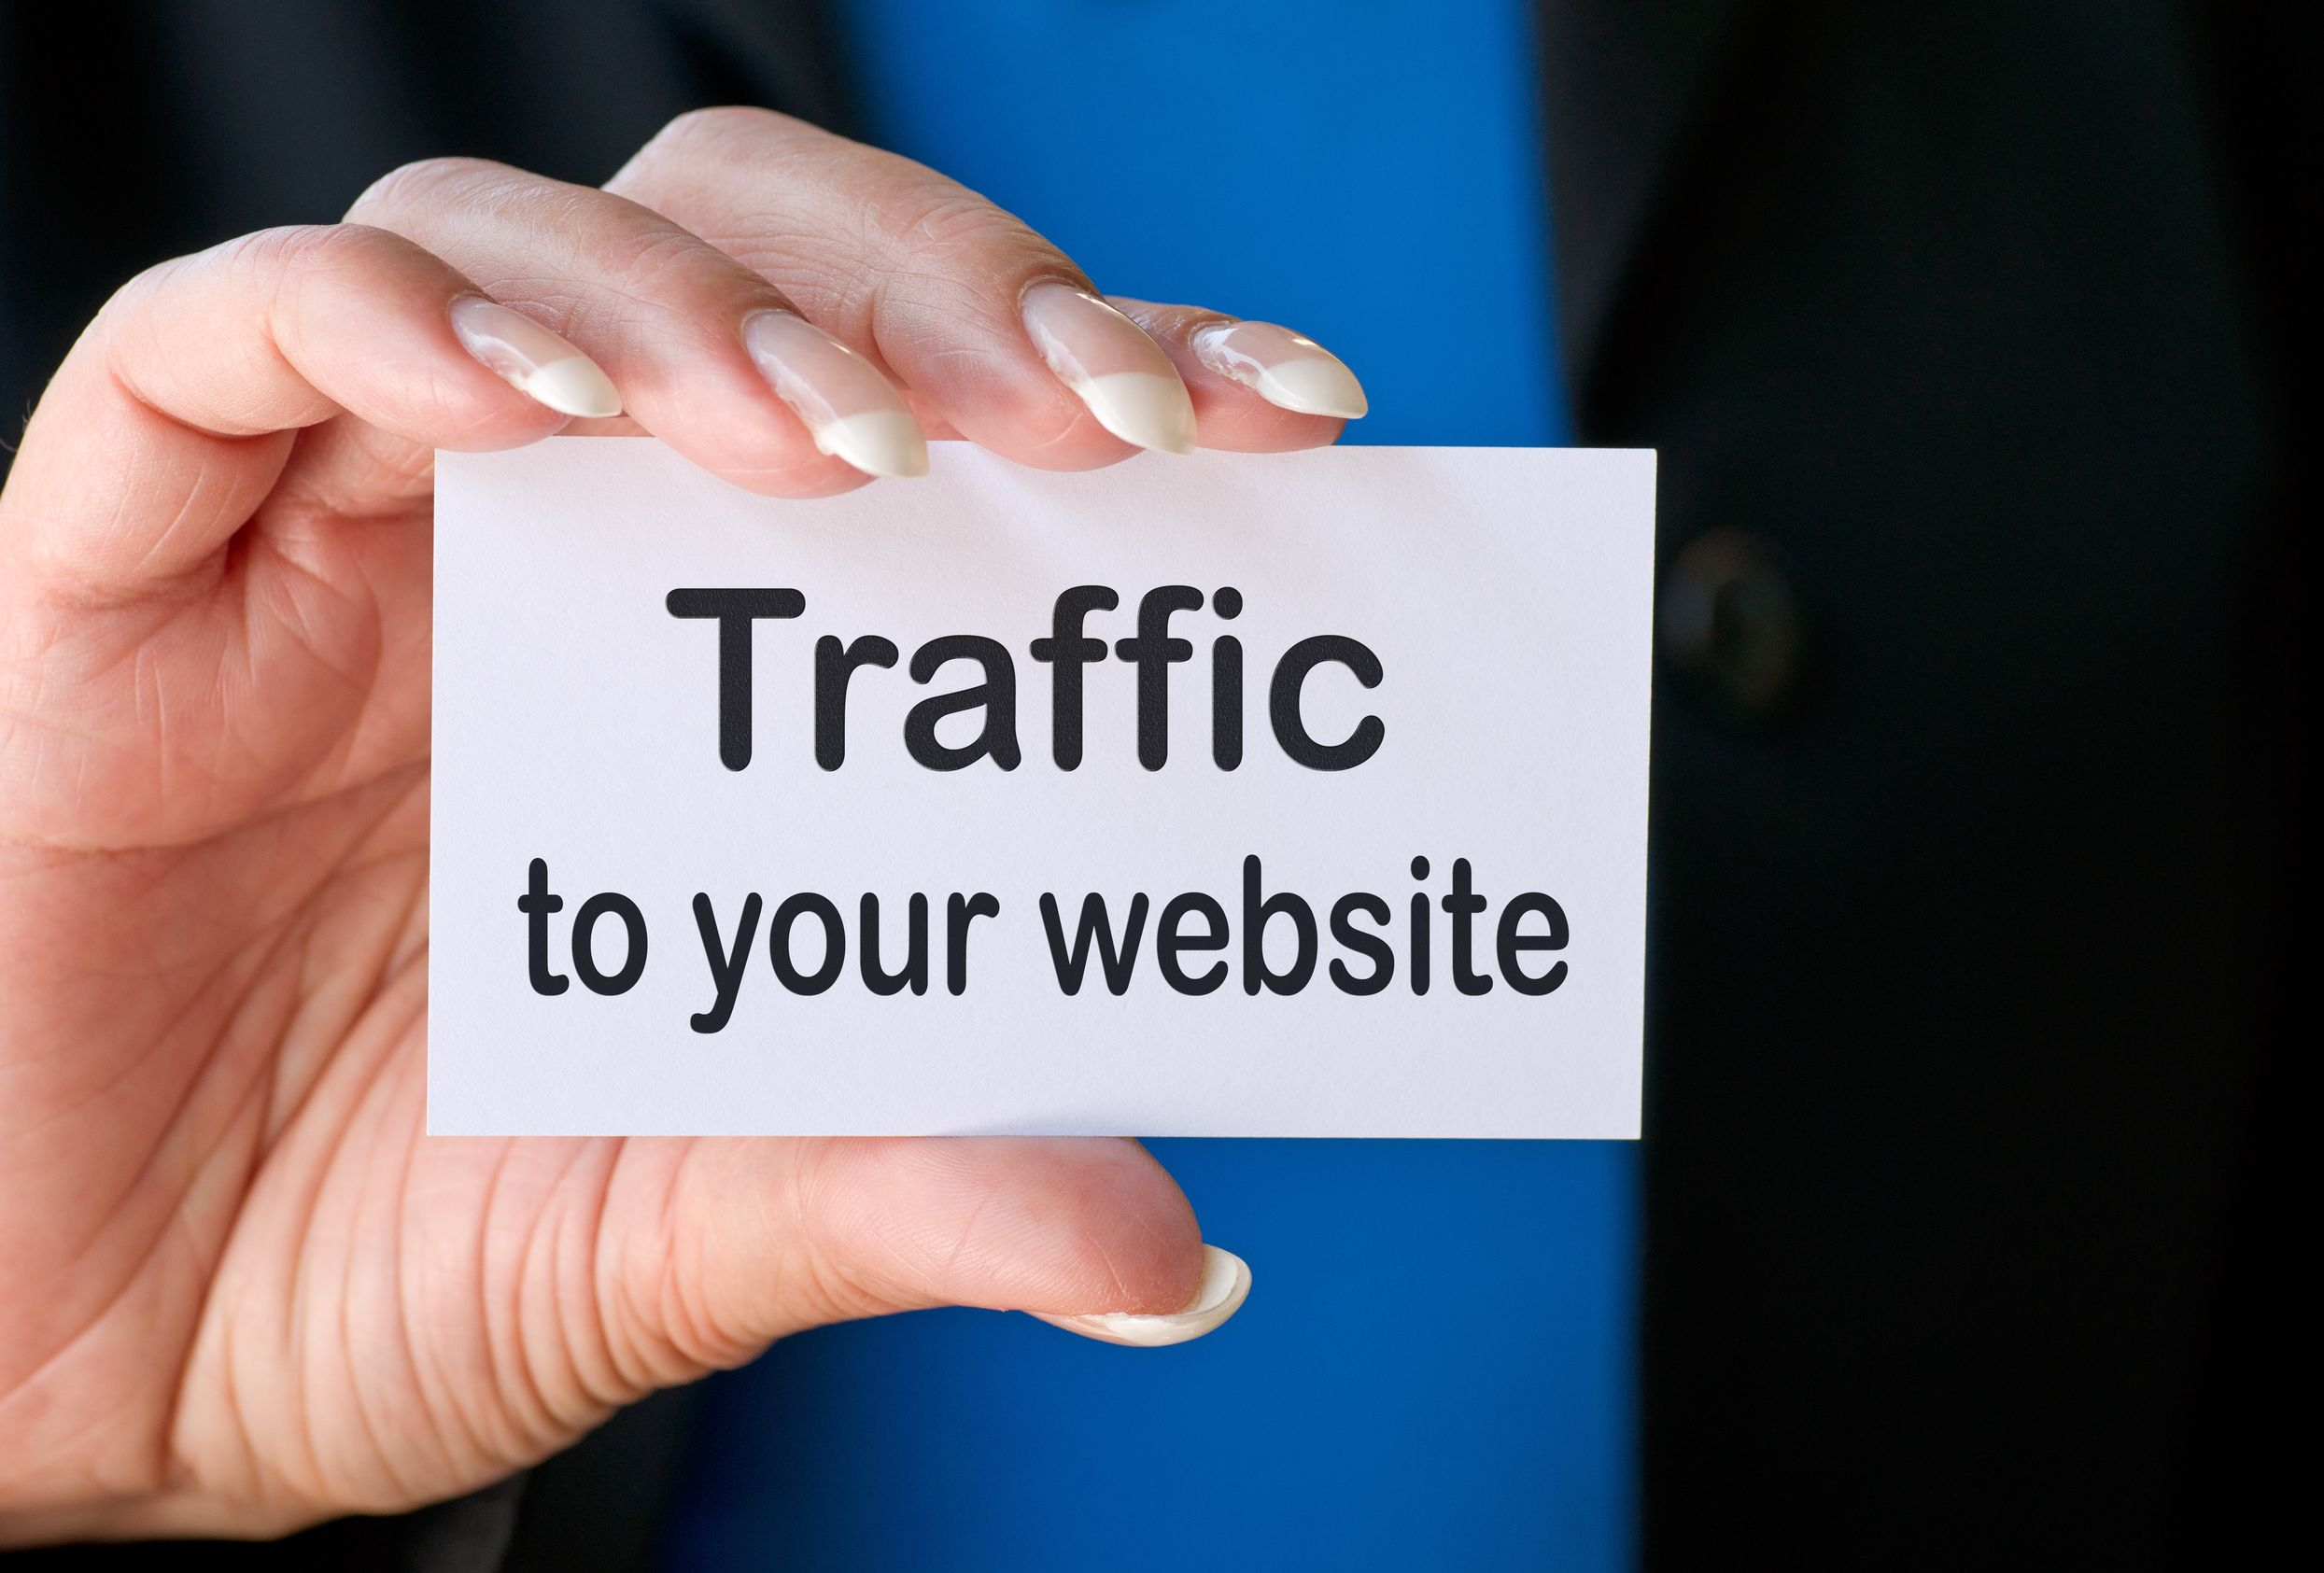 How do you get traffic to your website?